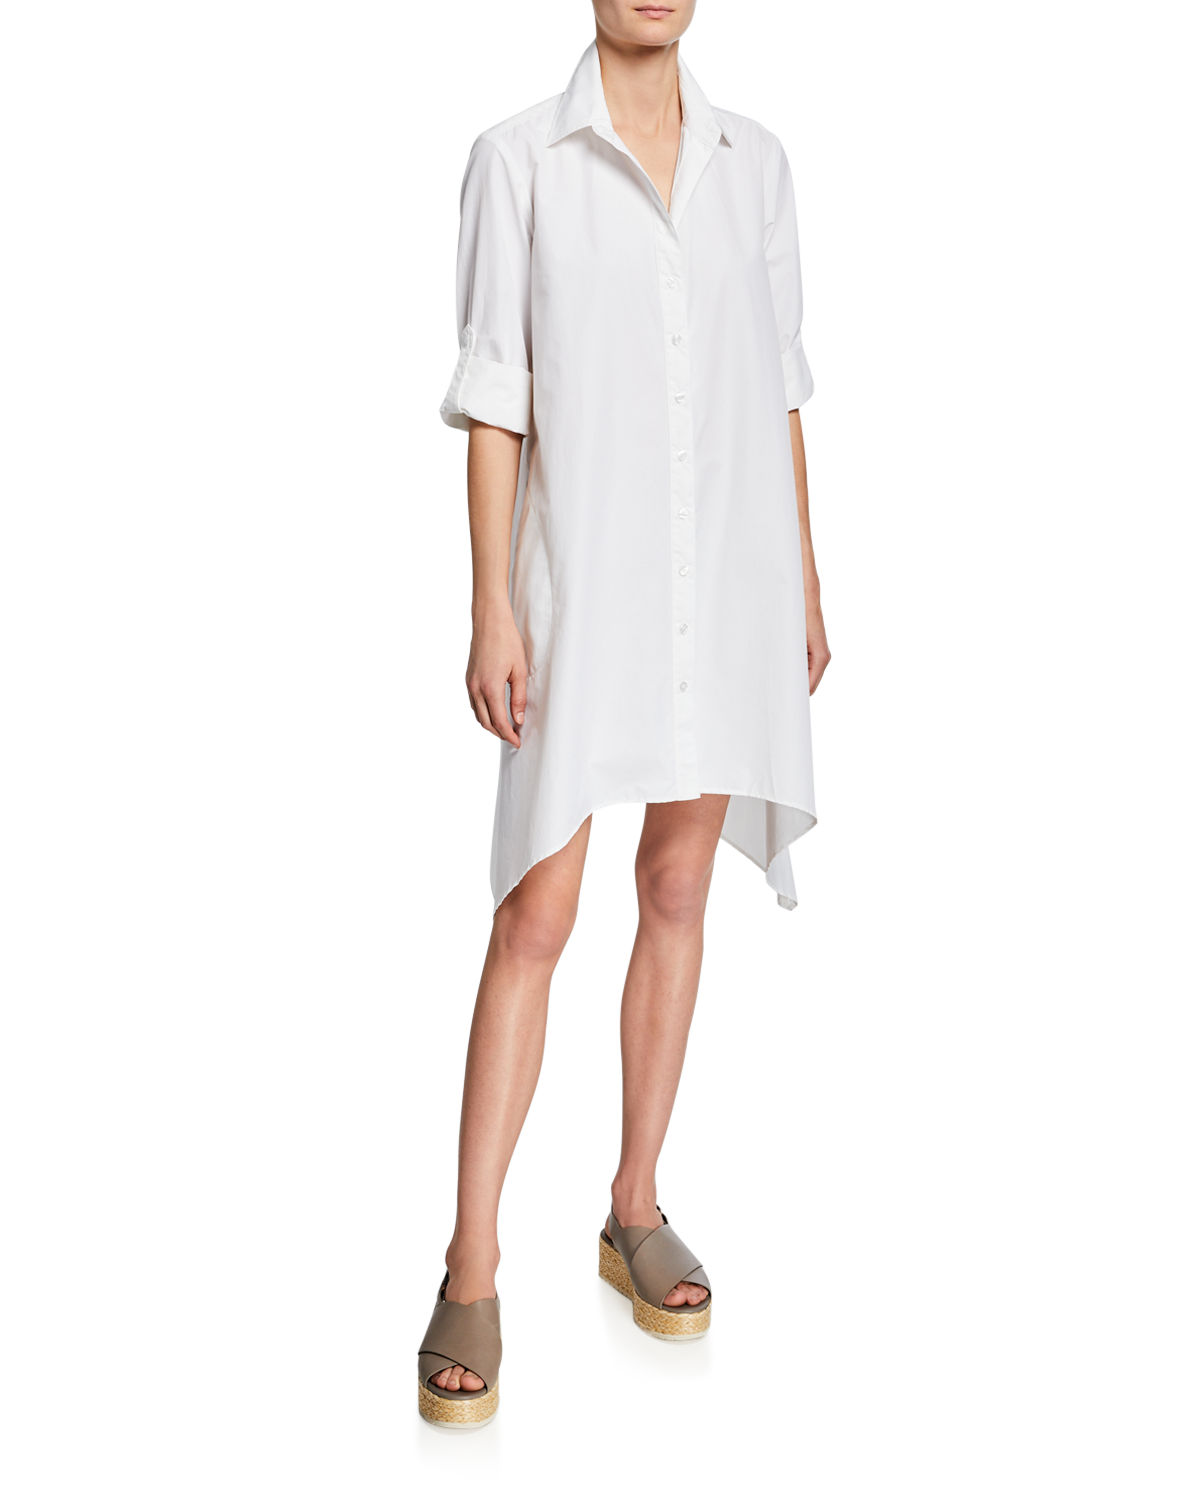 Finley BRUNO BUTTON-FRONT LONG-SLEEVE UNEVEN-HEM SHIRTDRESS